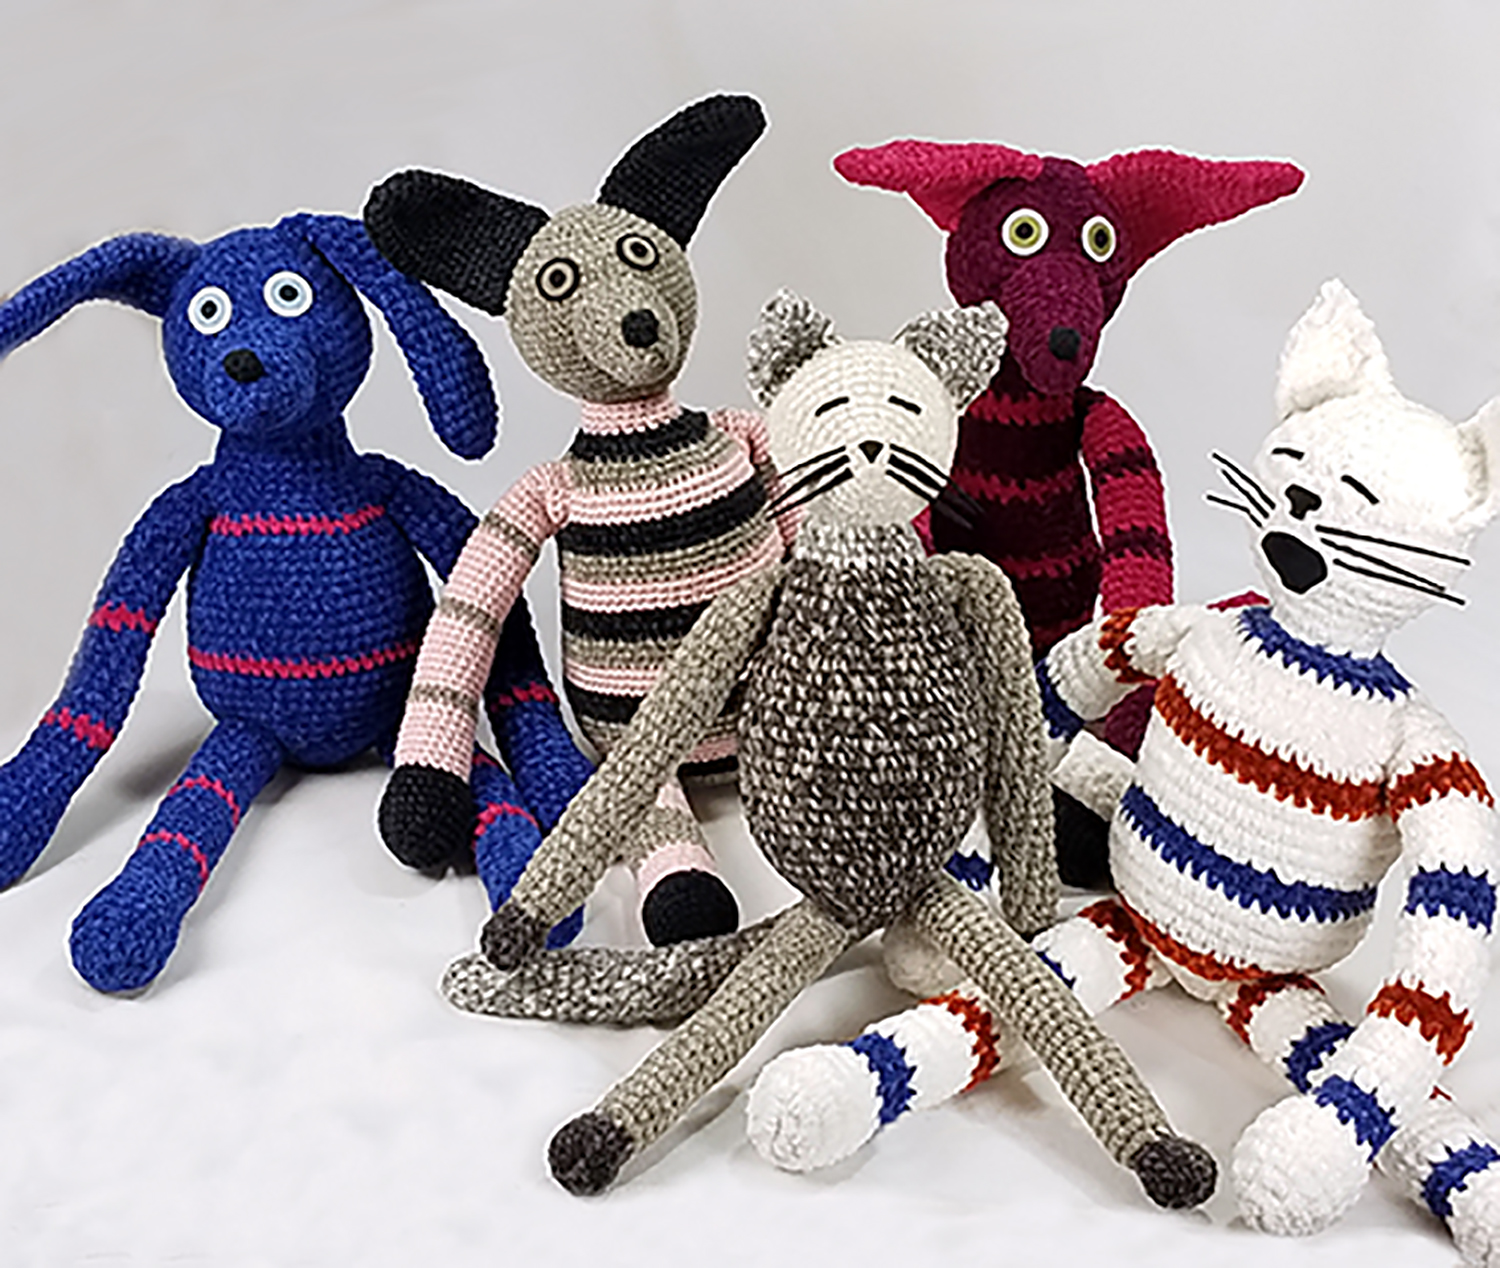 crocheted critters library show